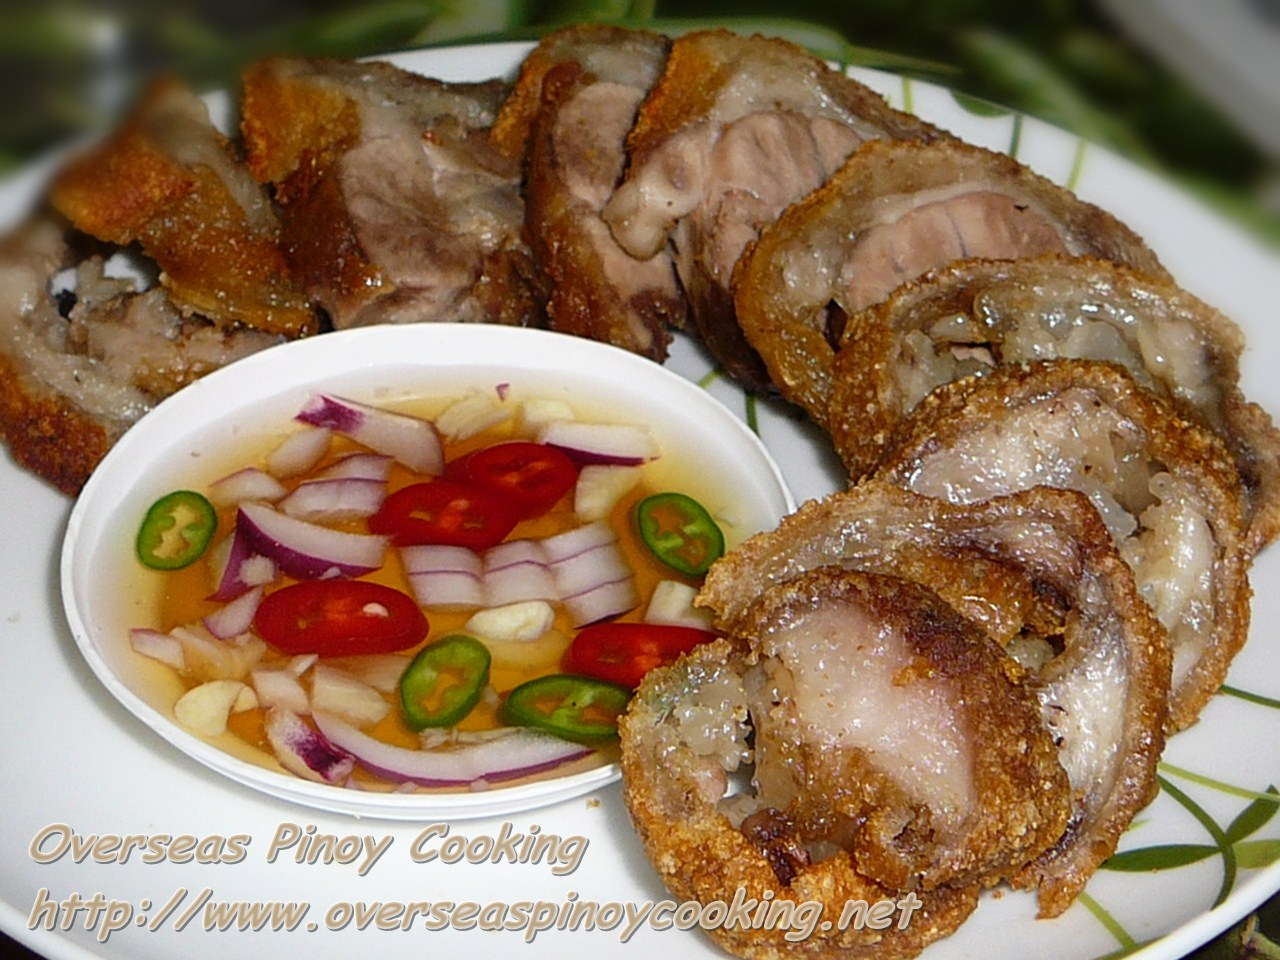 P1160712a - Philippine Native Foods - Philippine Photo Gallery